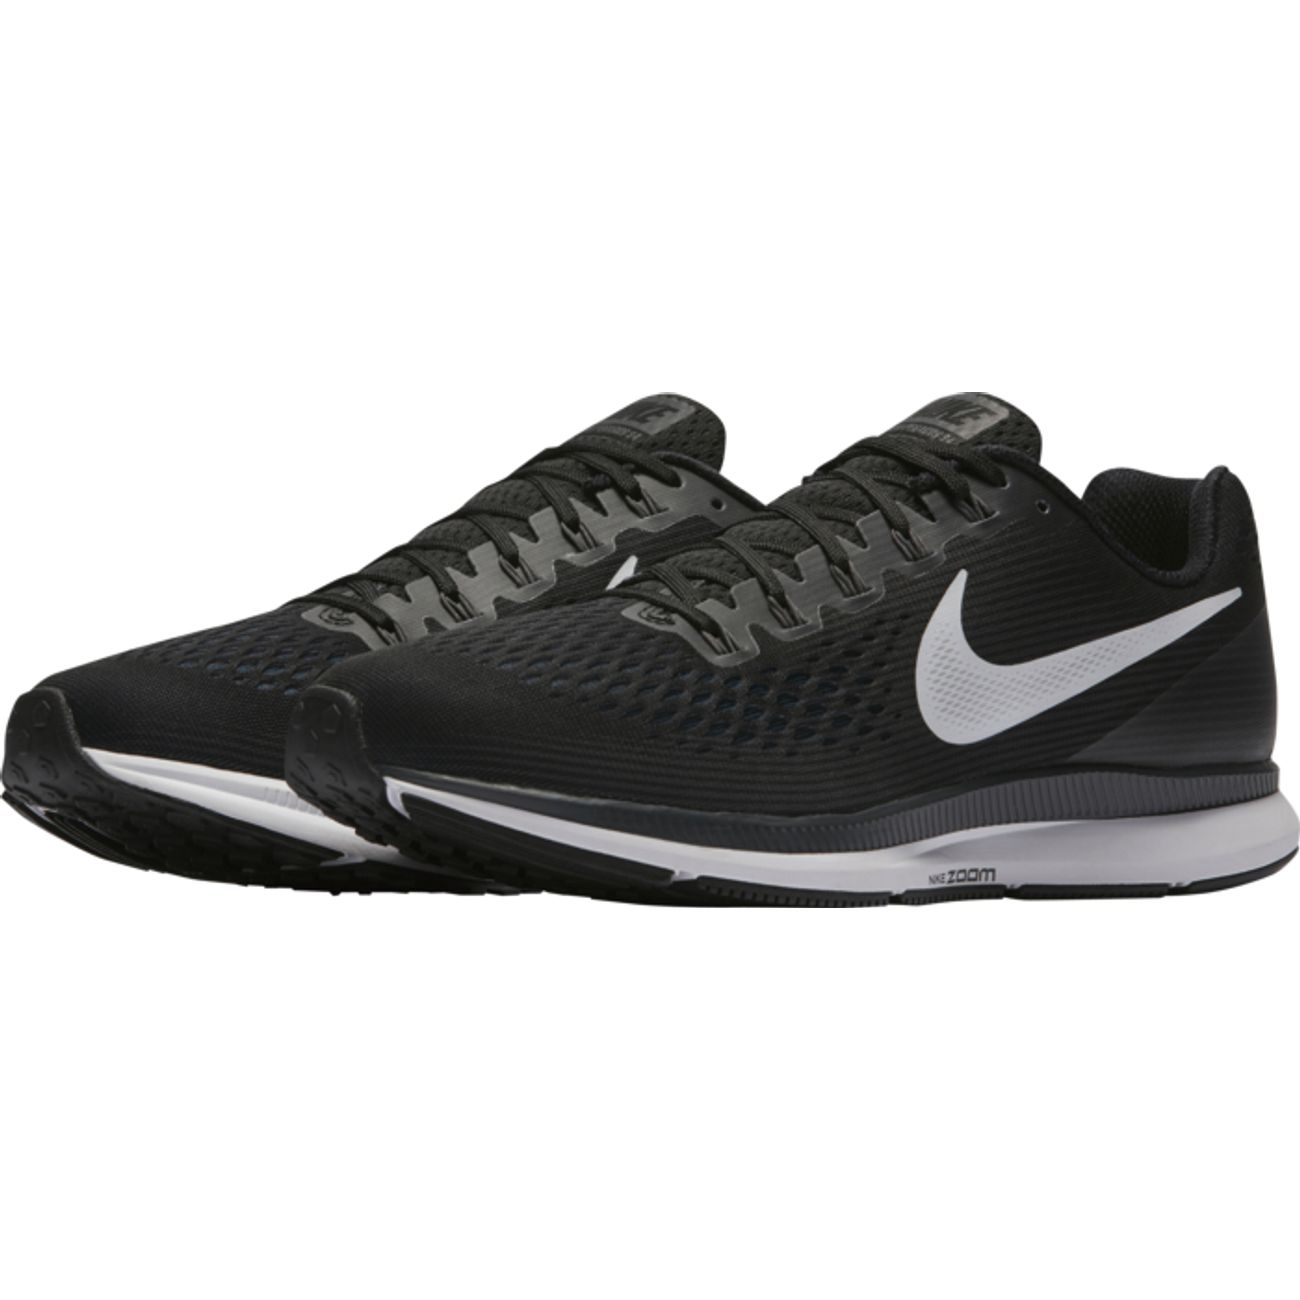 CHAUSSURES BASSES Running homme NIKE PEGASUS 34 M